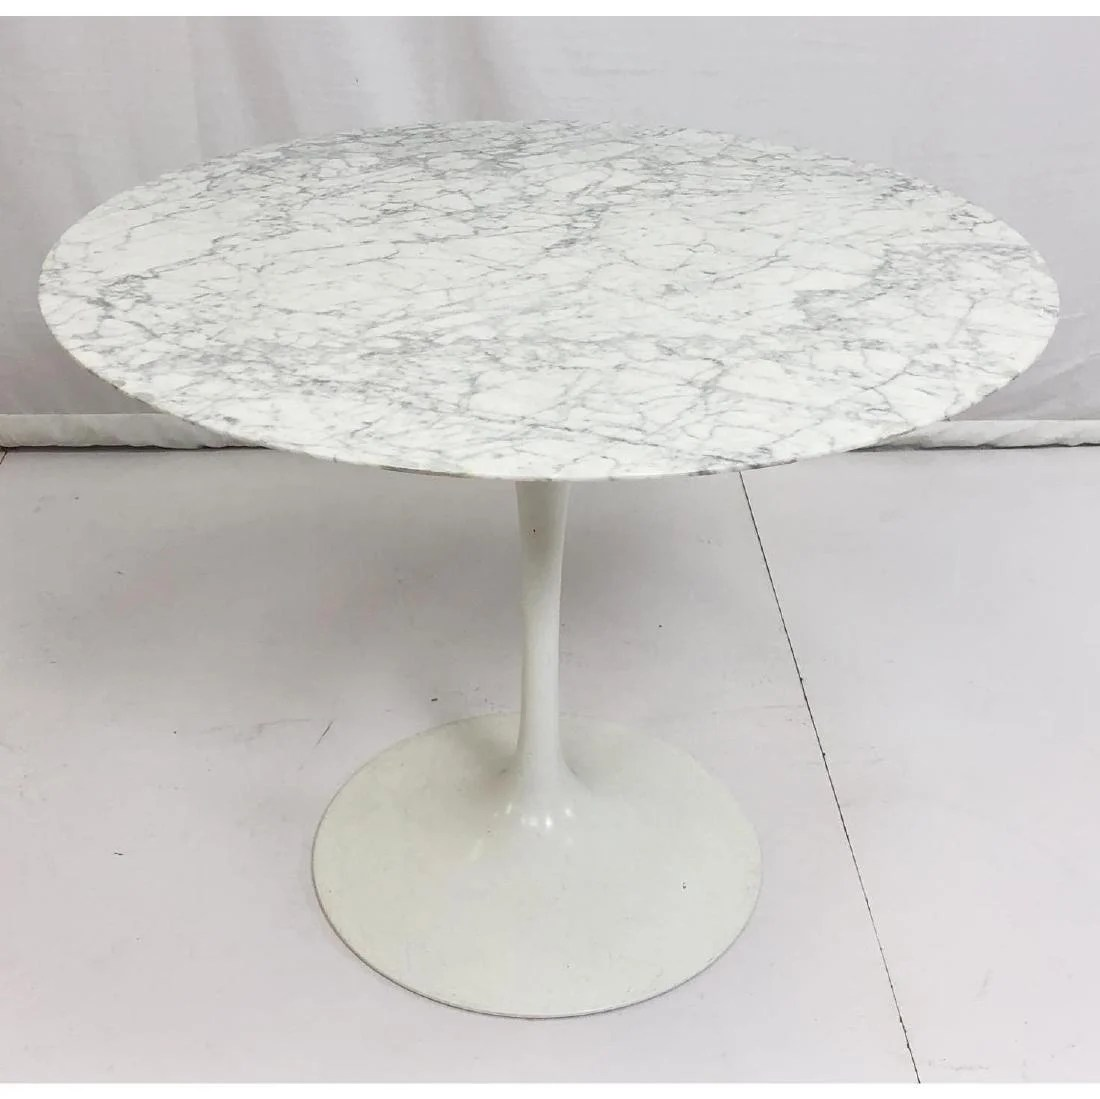 Saarinen Knoll Table Eero Saarinen For Knoll Marble Top Dining Table On Liveauctioneers